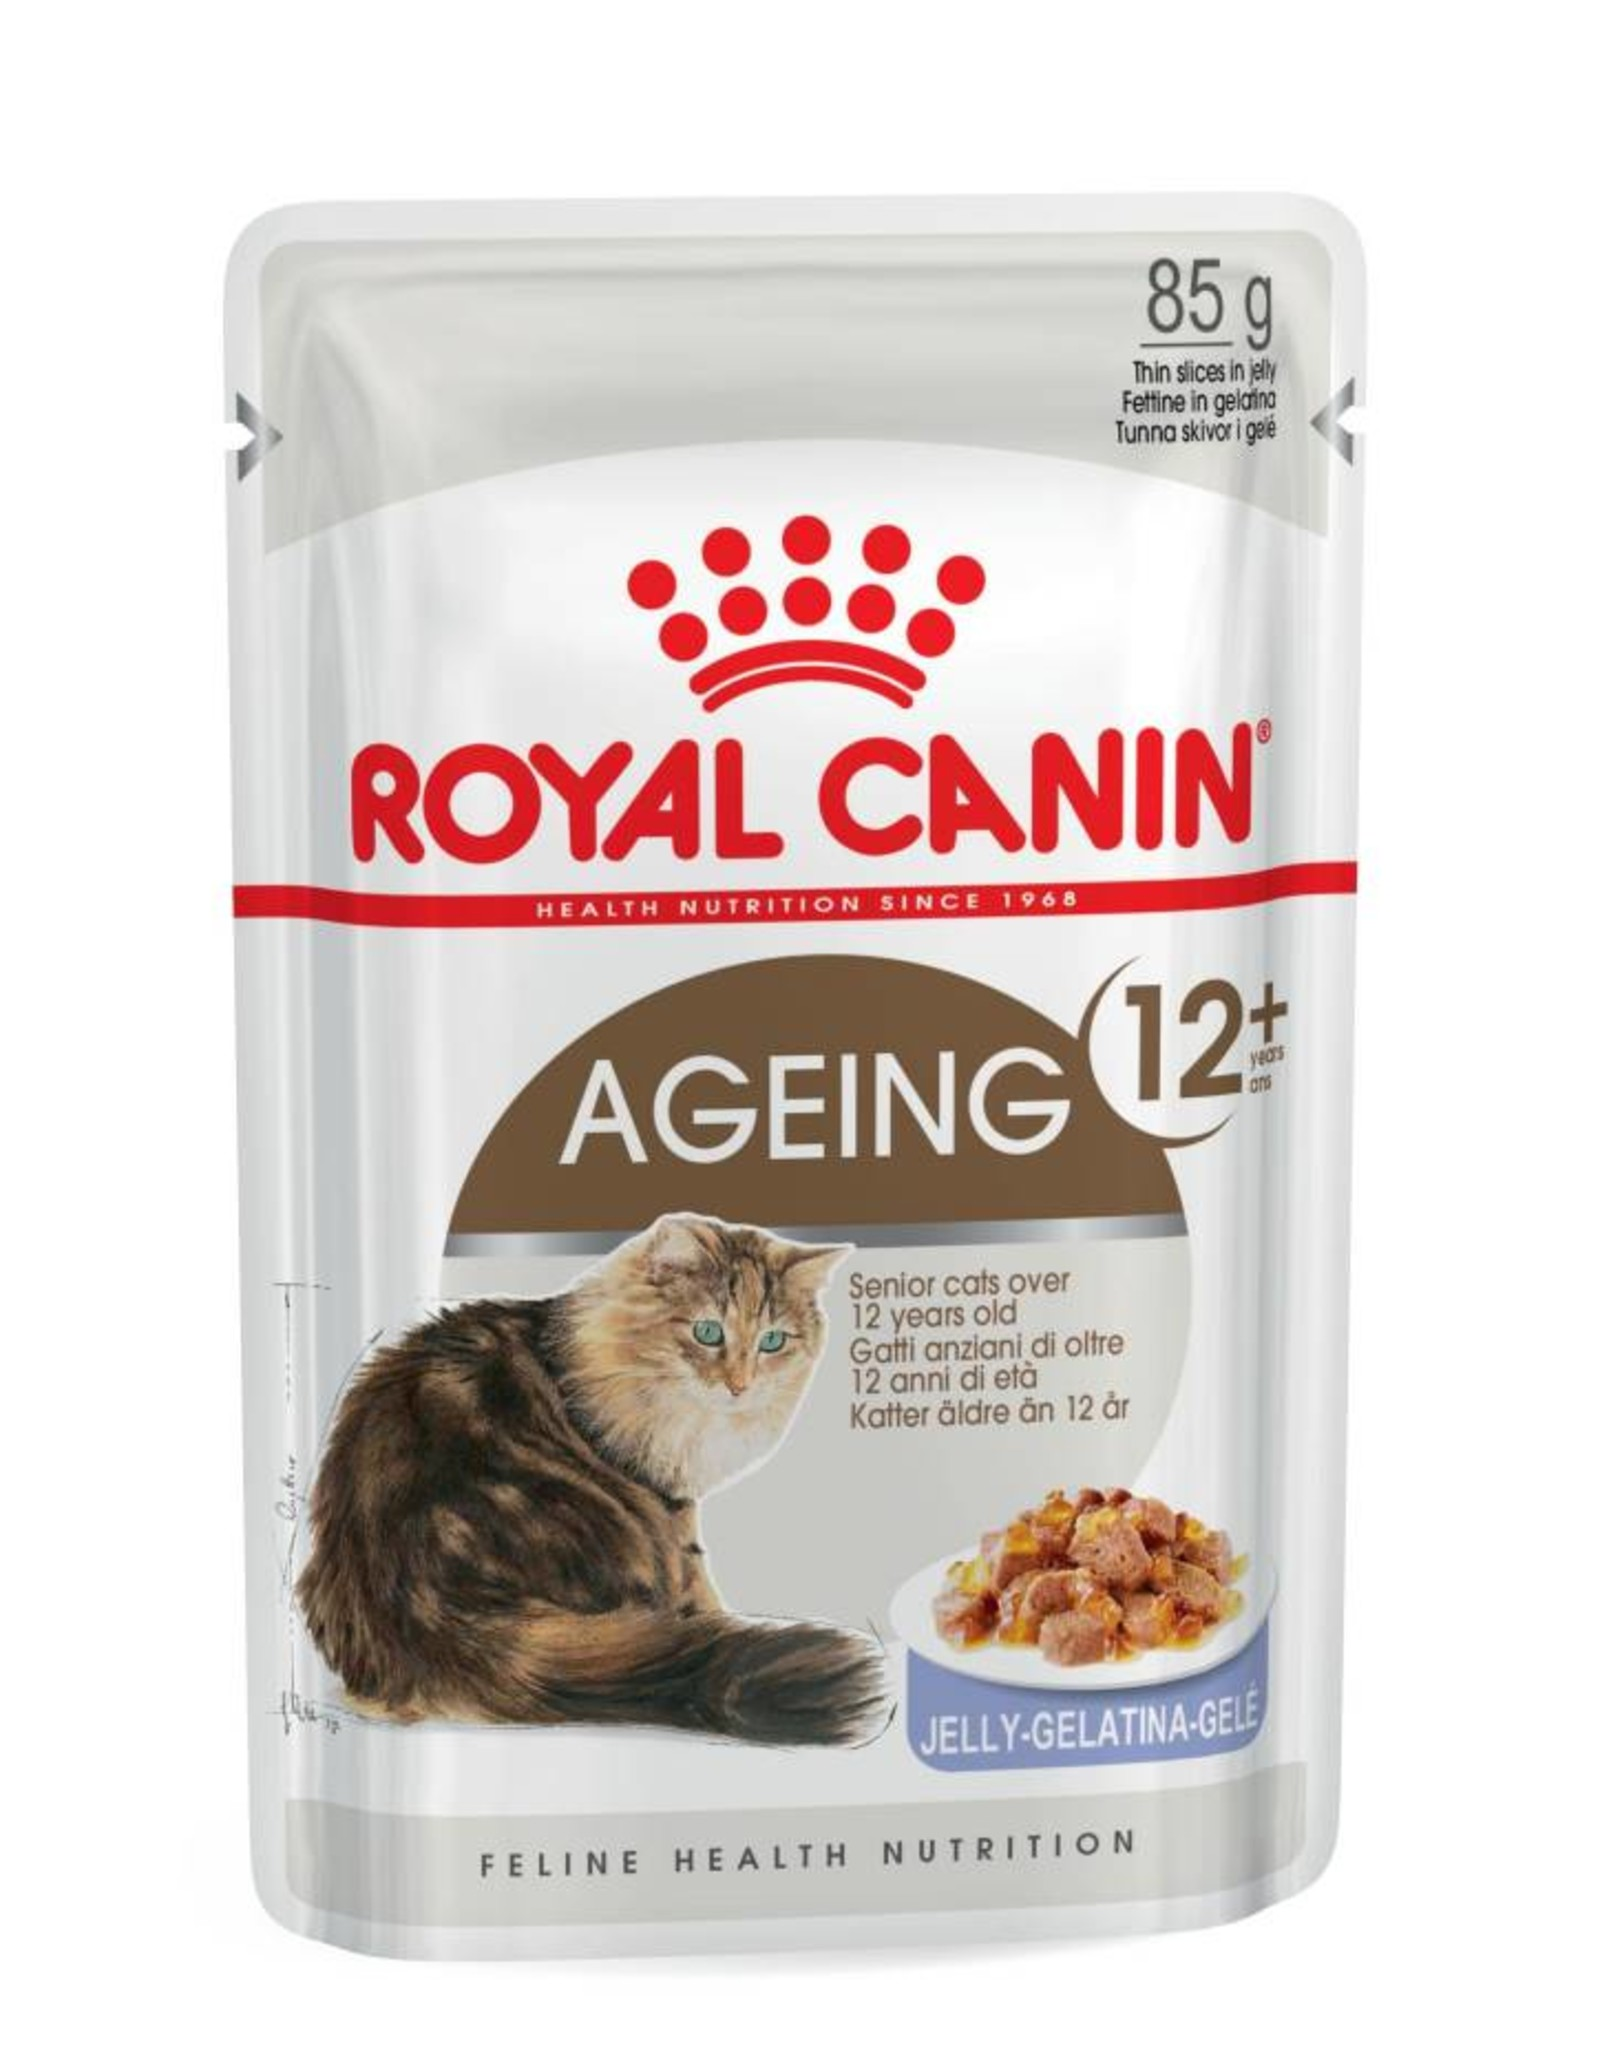 Royal Canin Ageing 12+ Senior Cat Wet Food Pouch with Jelly, 85g